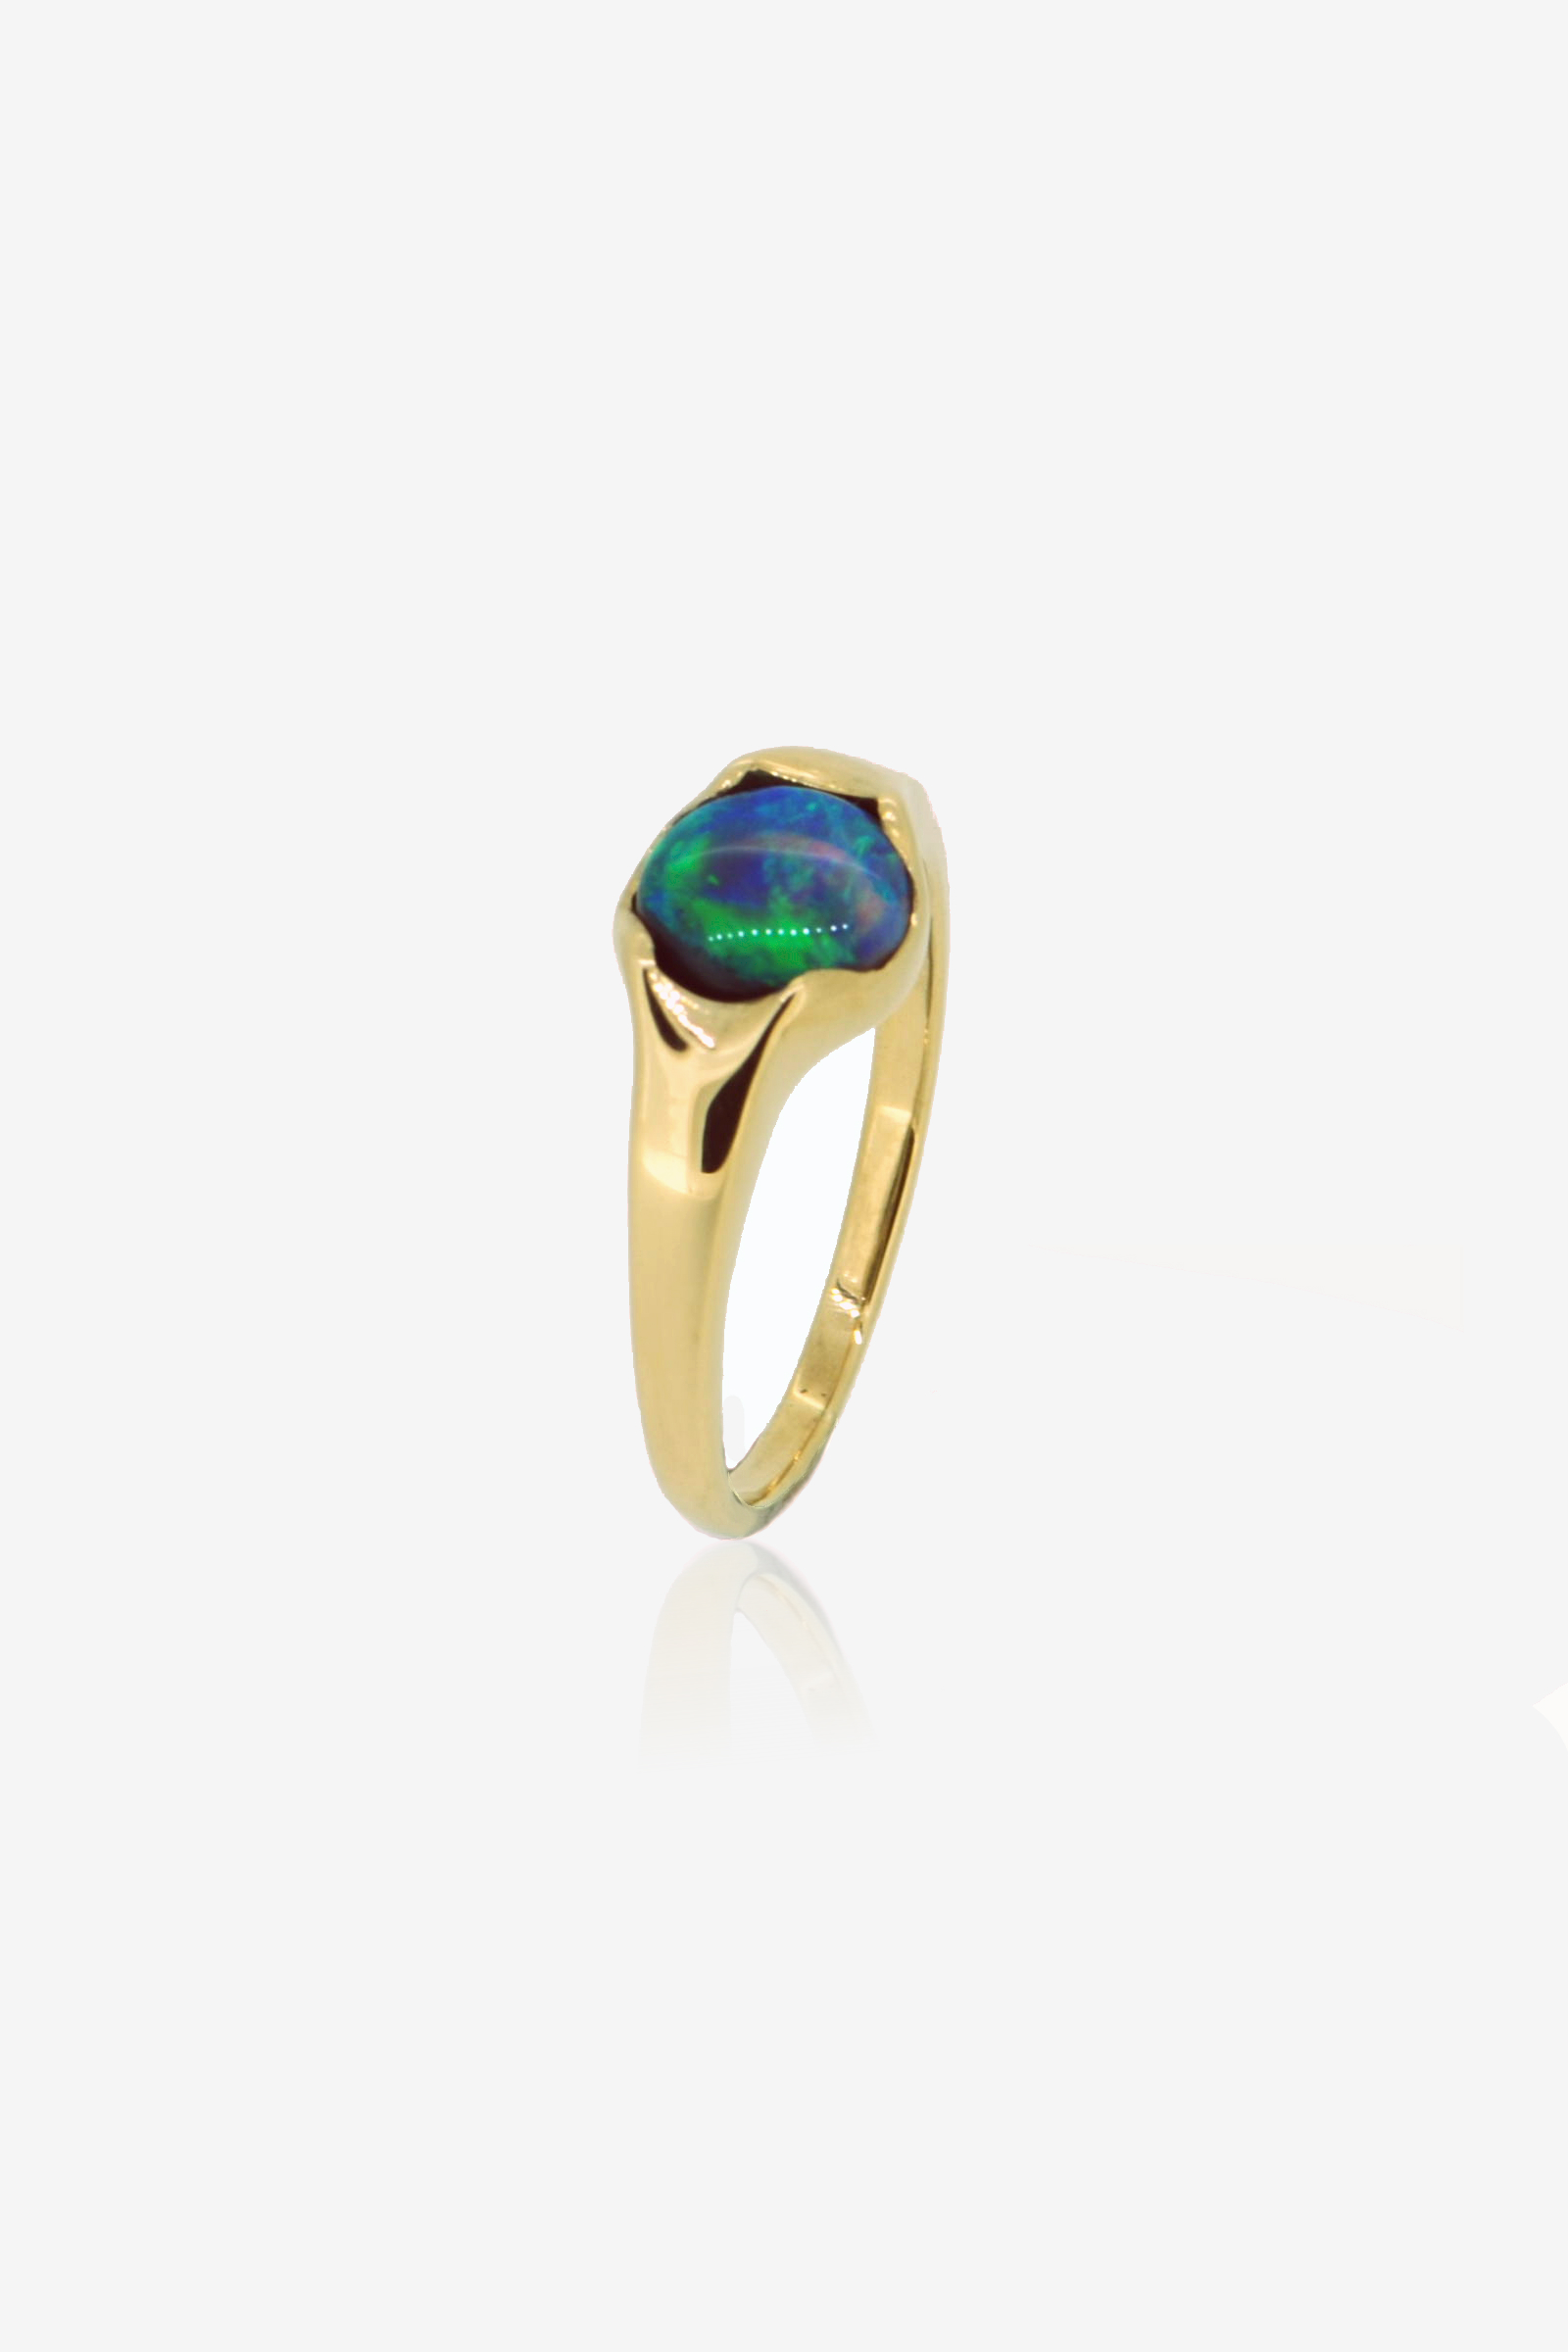 Black Opal and Fairmined Eco Gold ring